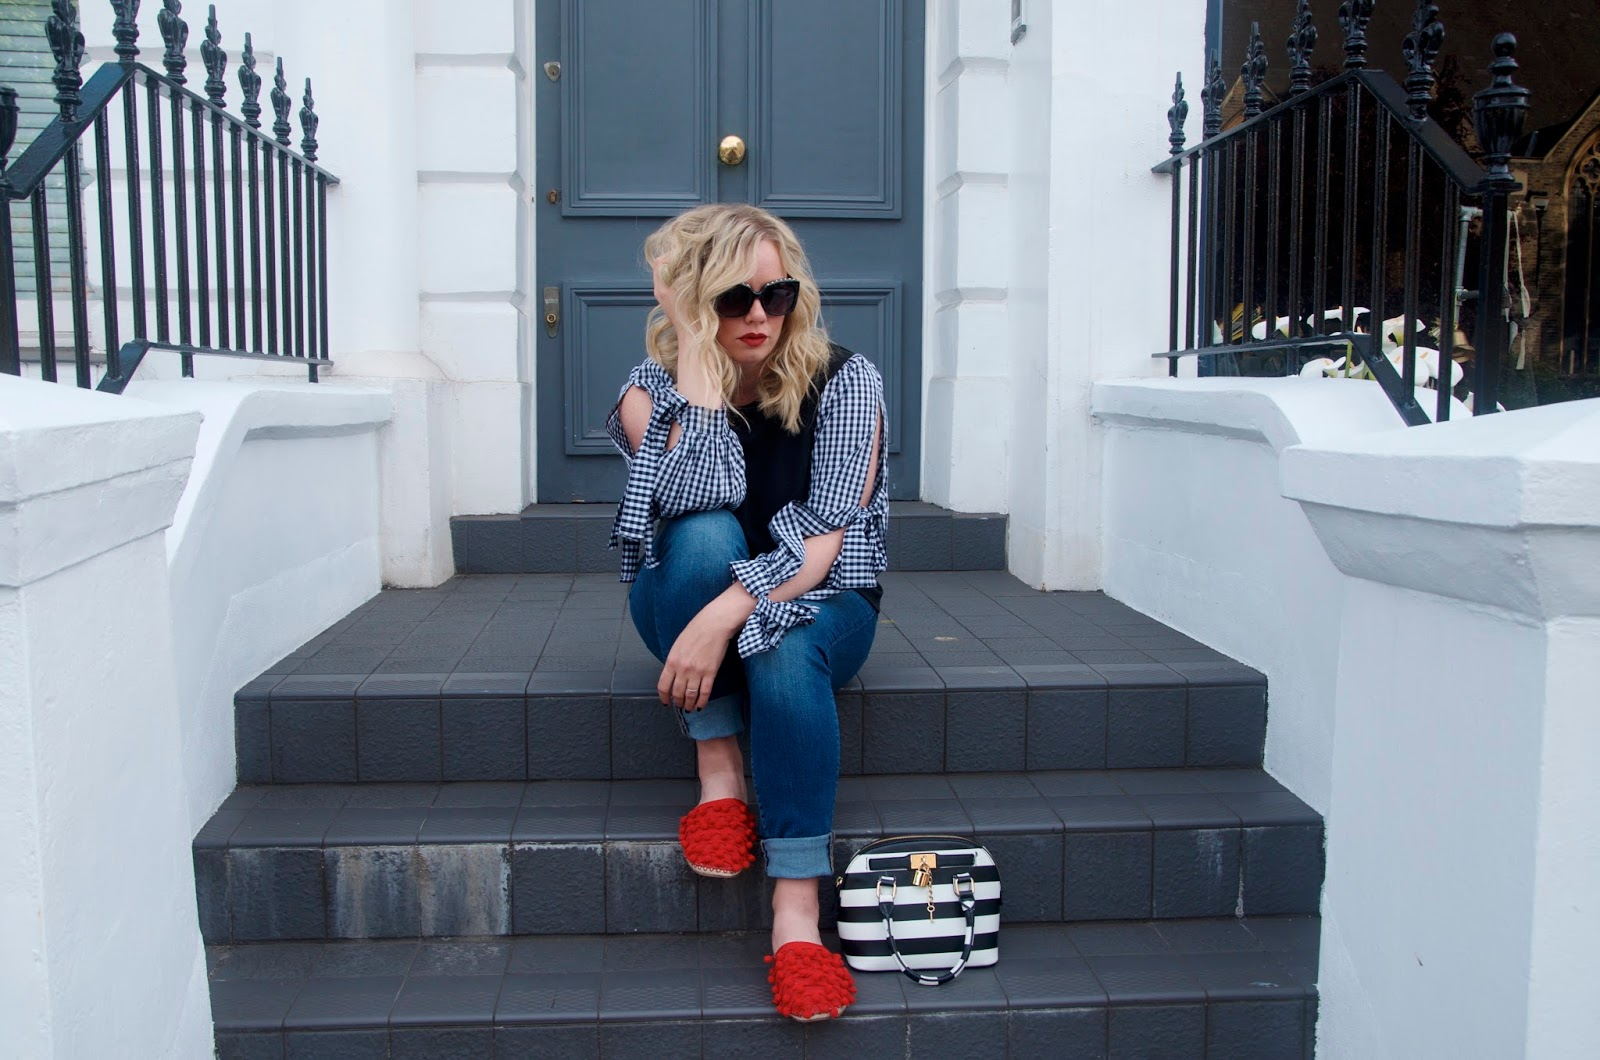 Red pom-pom shoes, gingham top, black sunglasses and denim